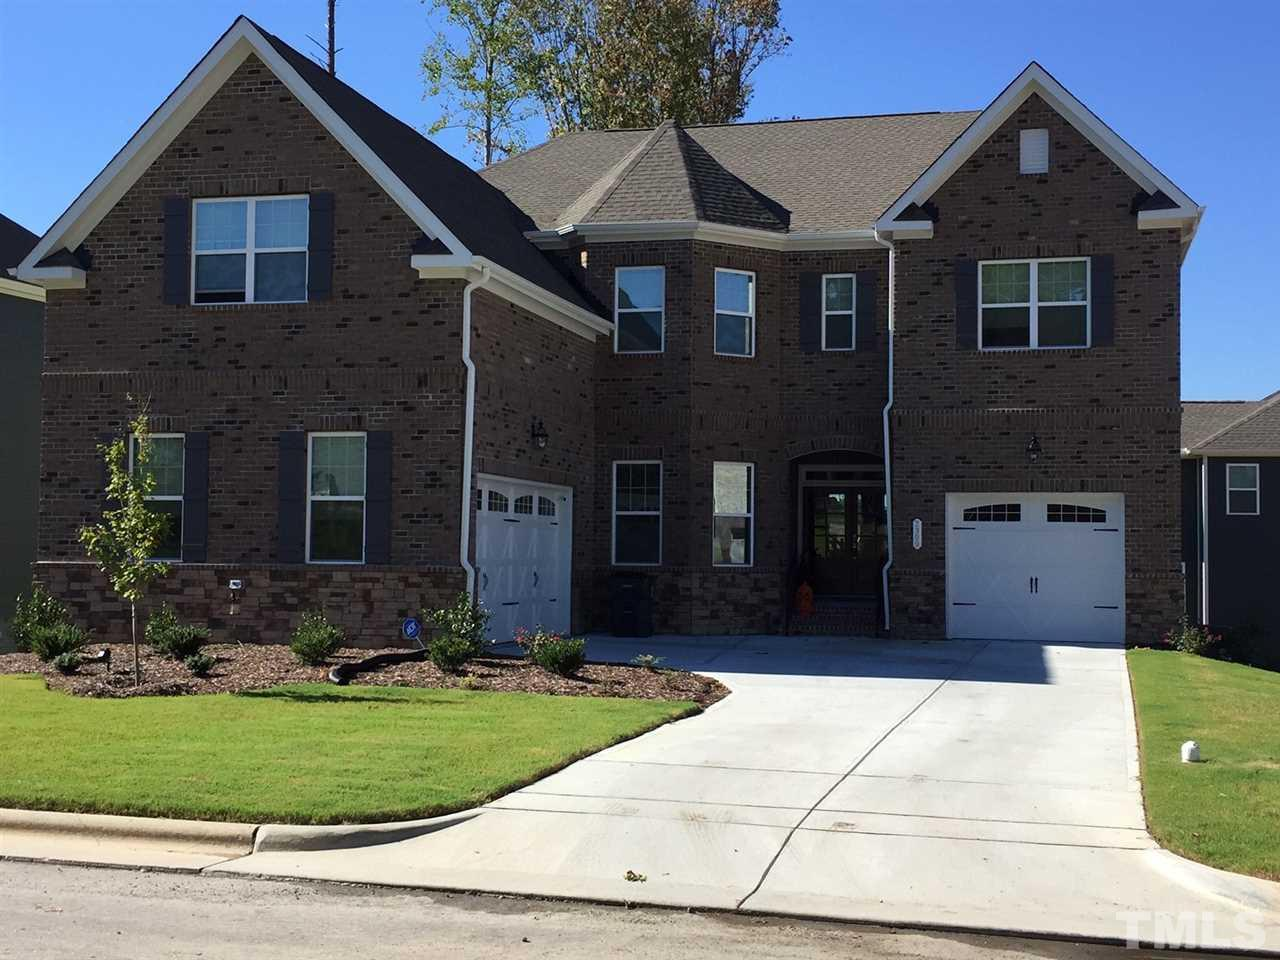 Stunning model home is very desirable nbrhd. 1st flr guest bdrm;Gourmet kitch with huge isl, sep brkfast rm, and lg keeping rm;mudrm w/drop zone.Spectacular owner's ste w/amazing w/in closet w/built-ins & dressing rm. Jack & Jill; sep bdrm w/priv bath; rec rm. Huge outdoor living area inclds deck, paver patio and outdoor fireplace.  Great home for entertaining! All artwork, area rugs, special light fixtures, window treatments in home at time of purchase convey.